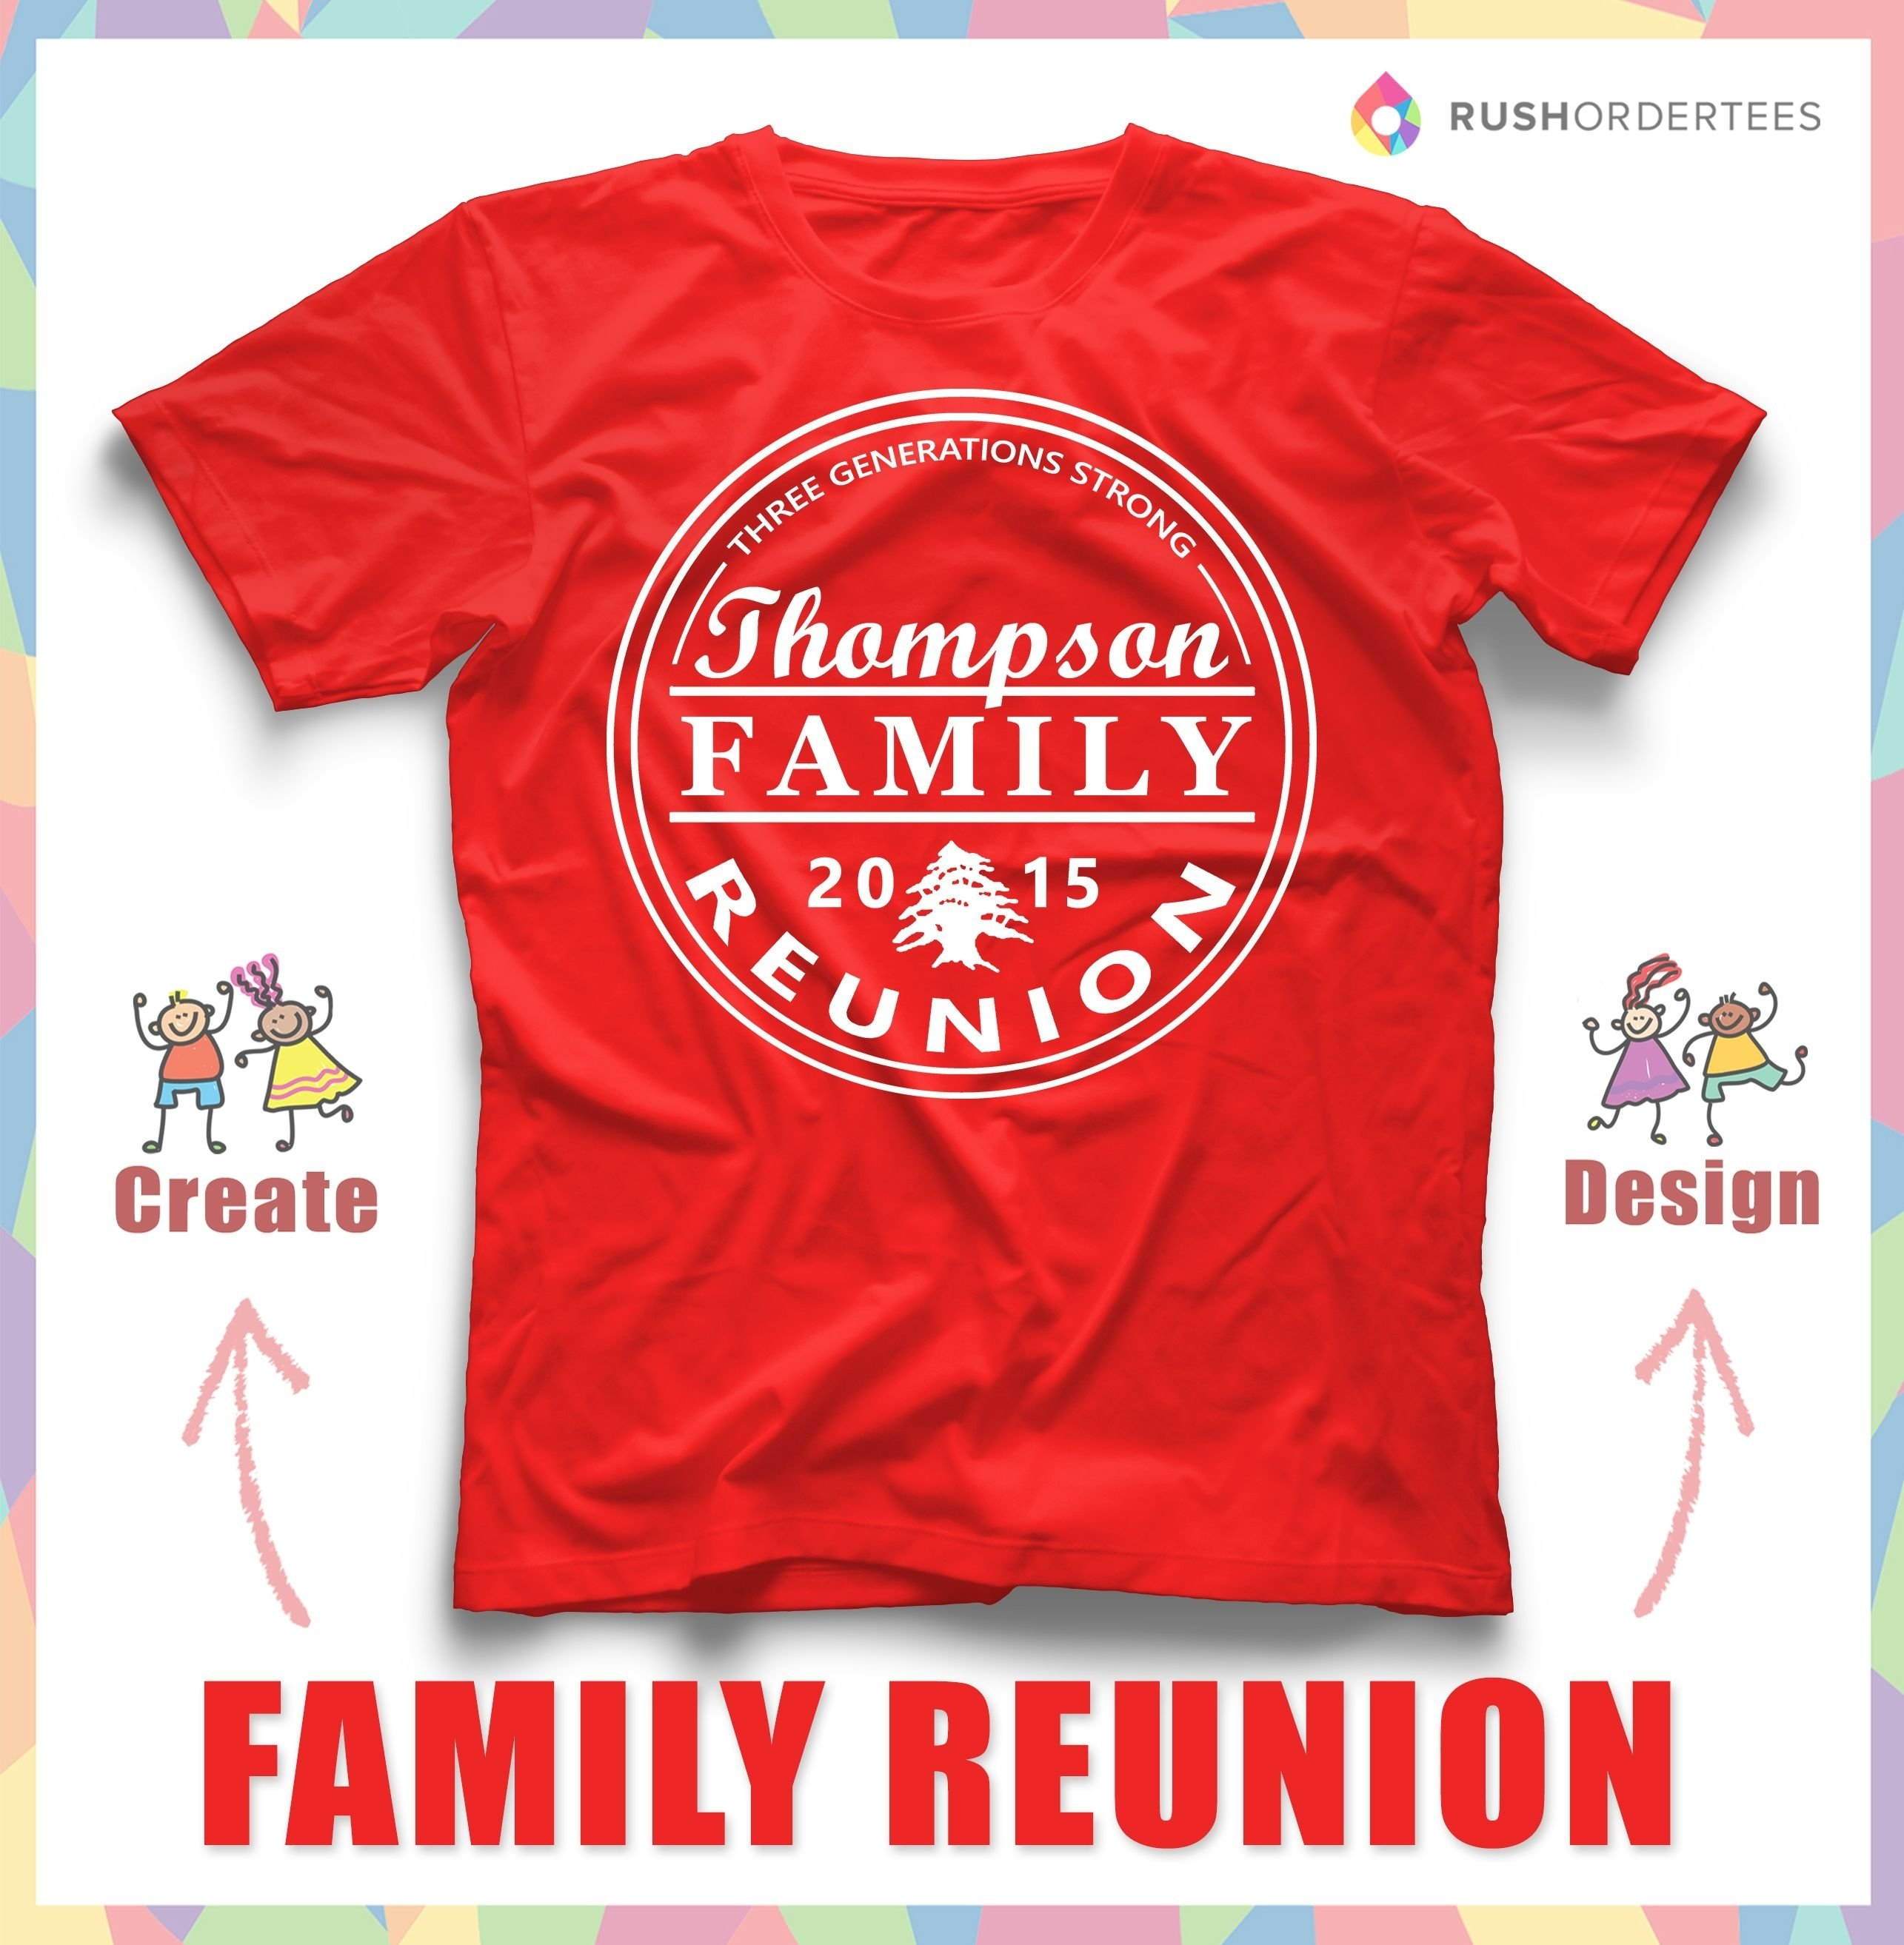 10 Attractive Family Reunion T-Shirt Design Ideas